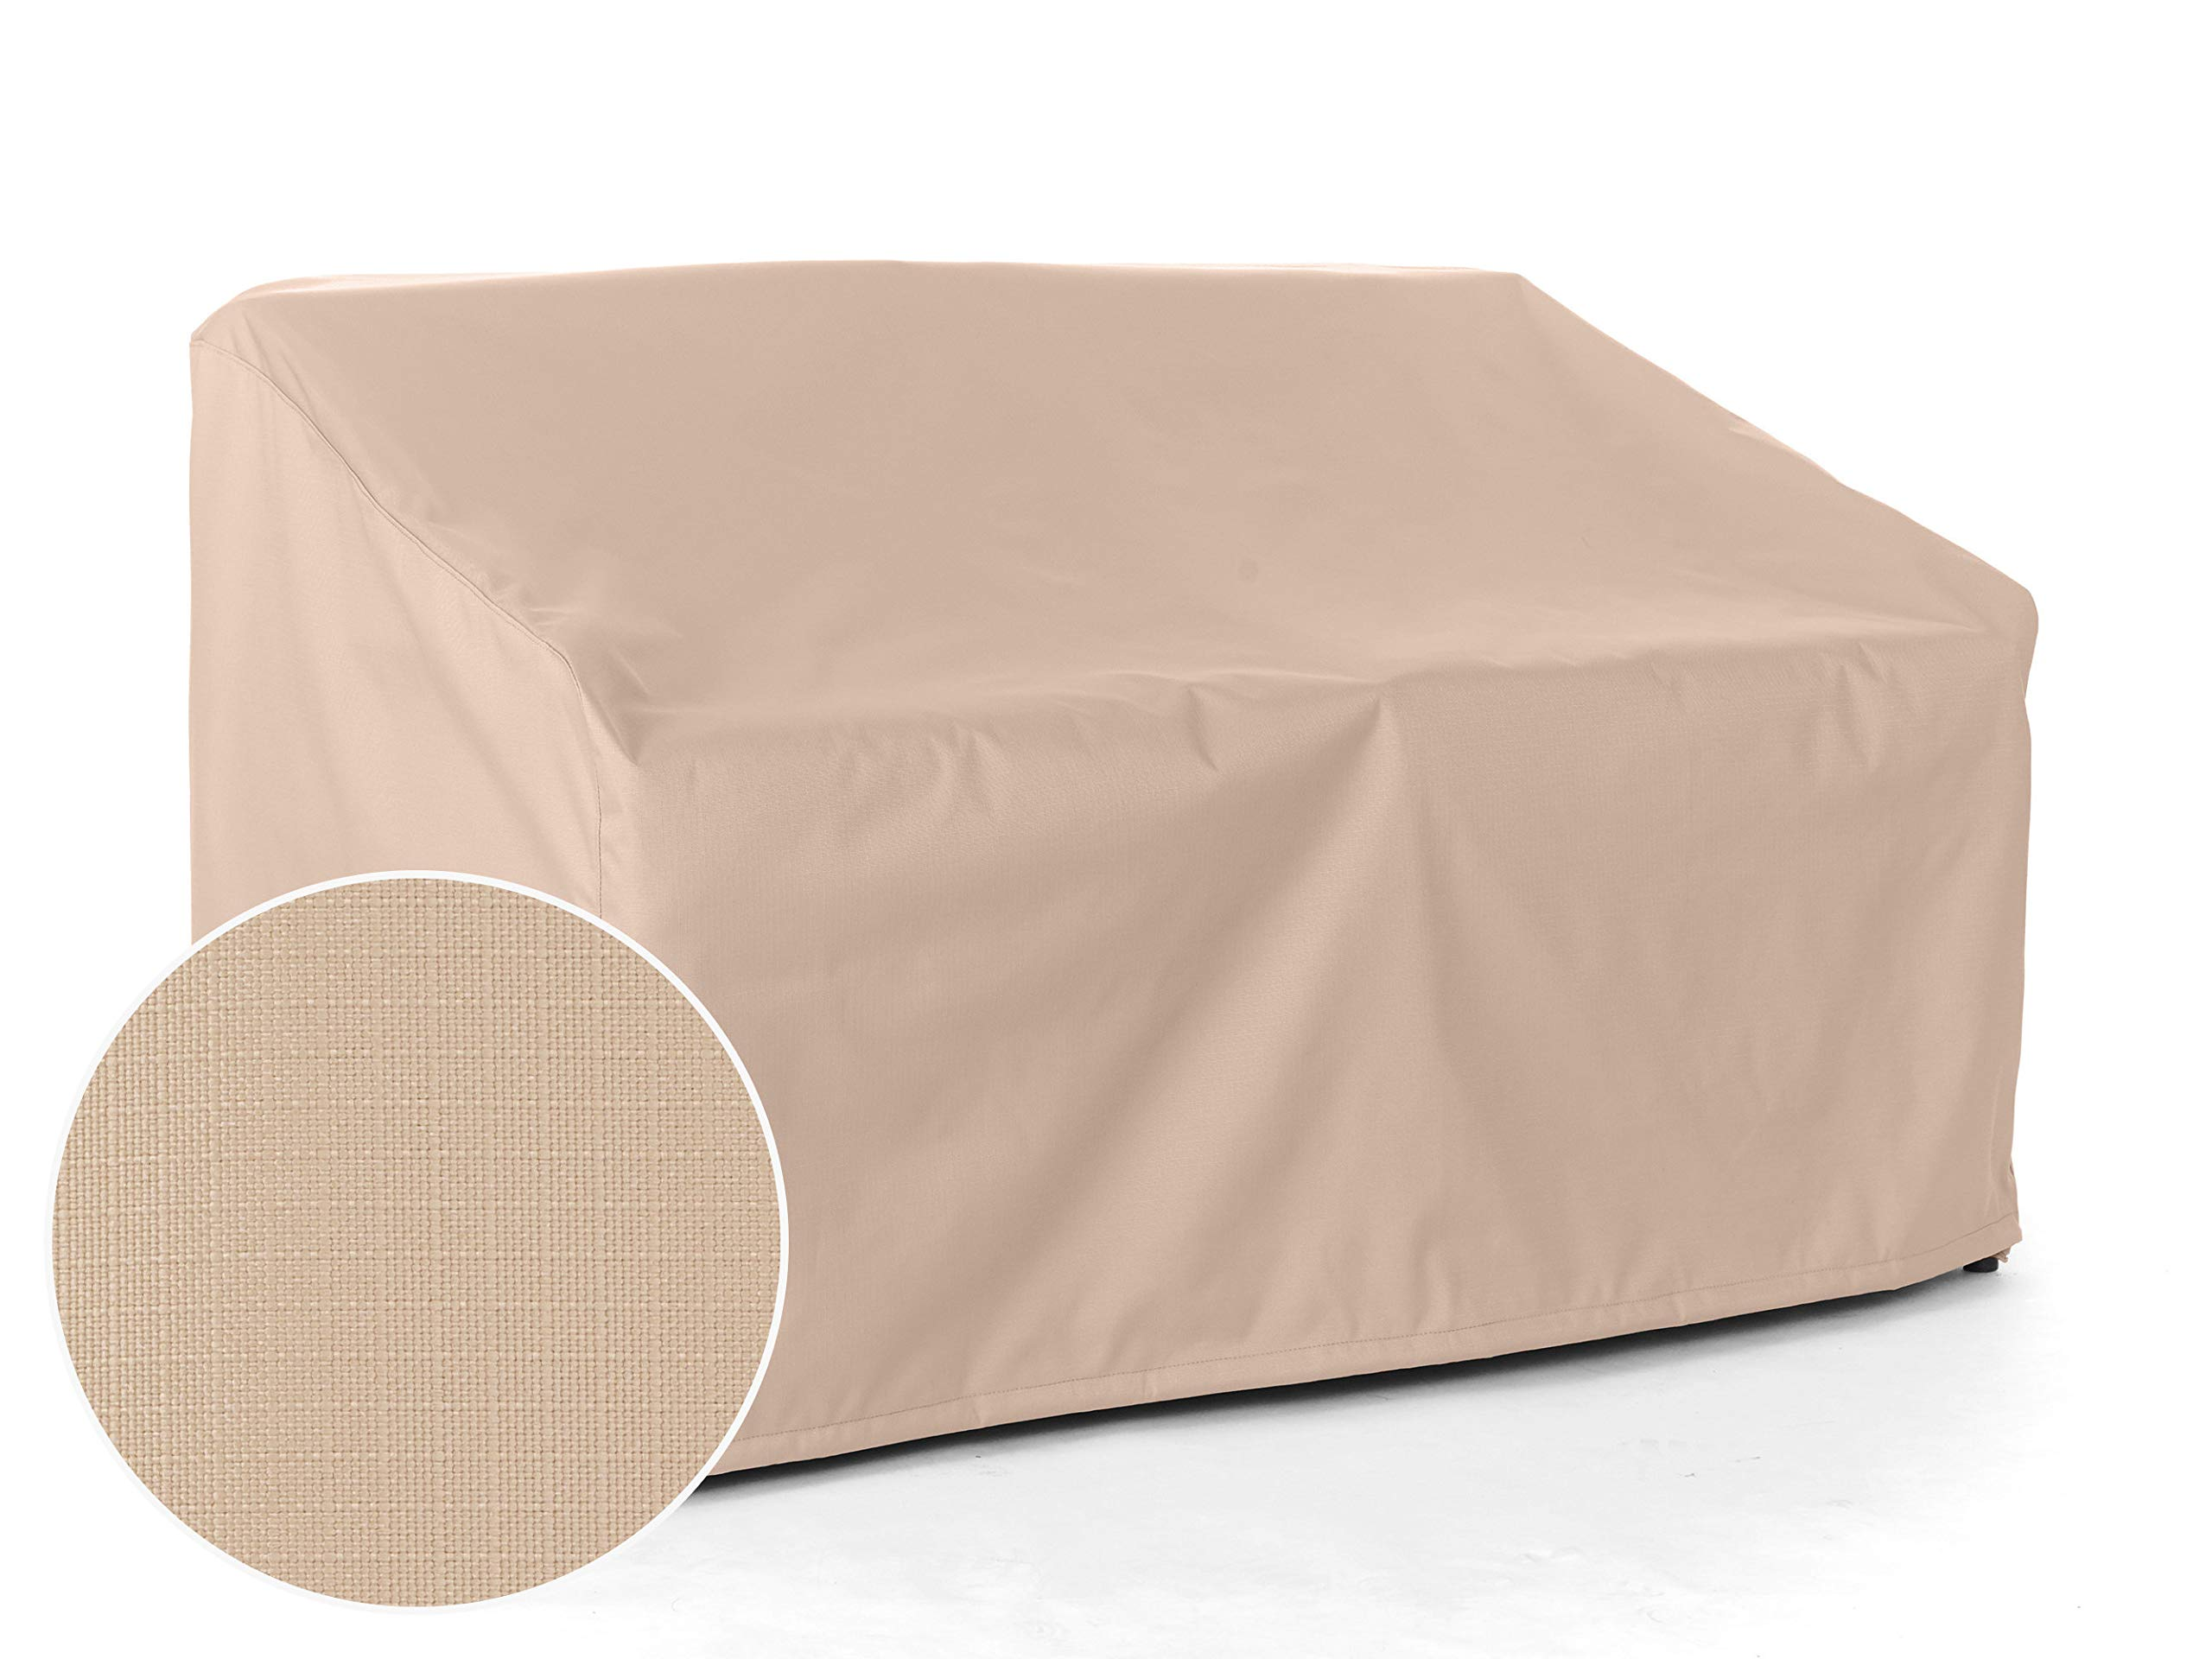 Covermates - Outdoor Patio Glider Covers - Fits 64 in Width, 34 in Depth and 38 in Height - Ultima Ripstop - 600D Fade Resistant Poly - Breathable Covered Ventilation - 7 YR Warranty - Ripstop Tan